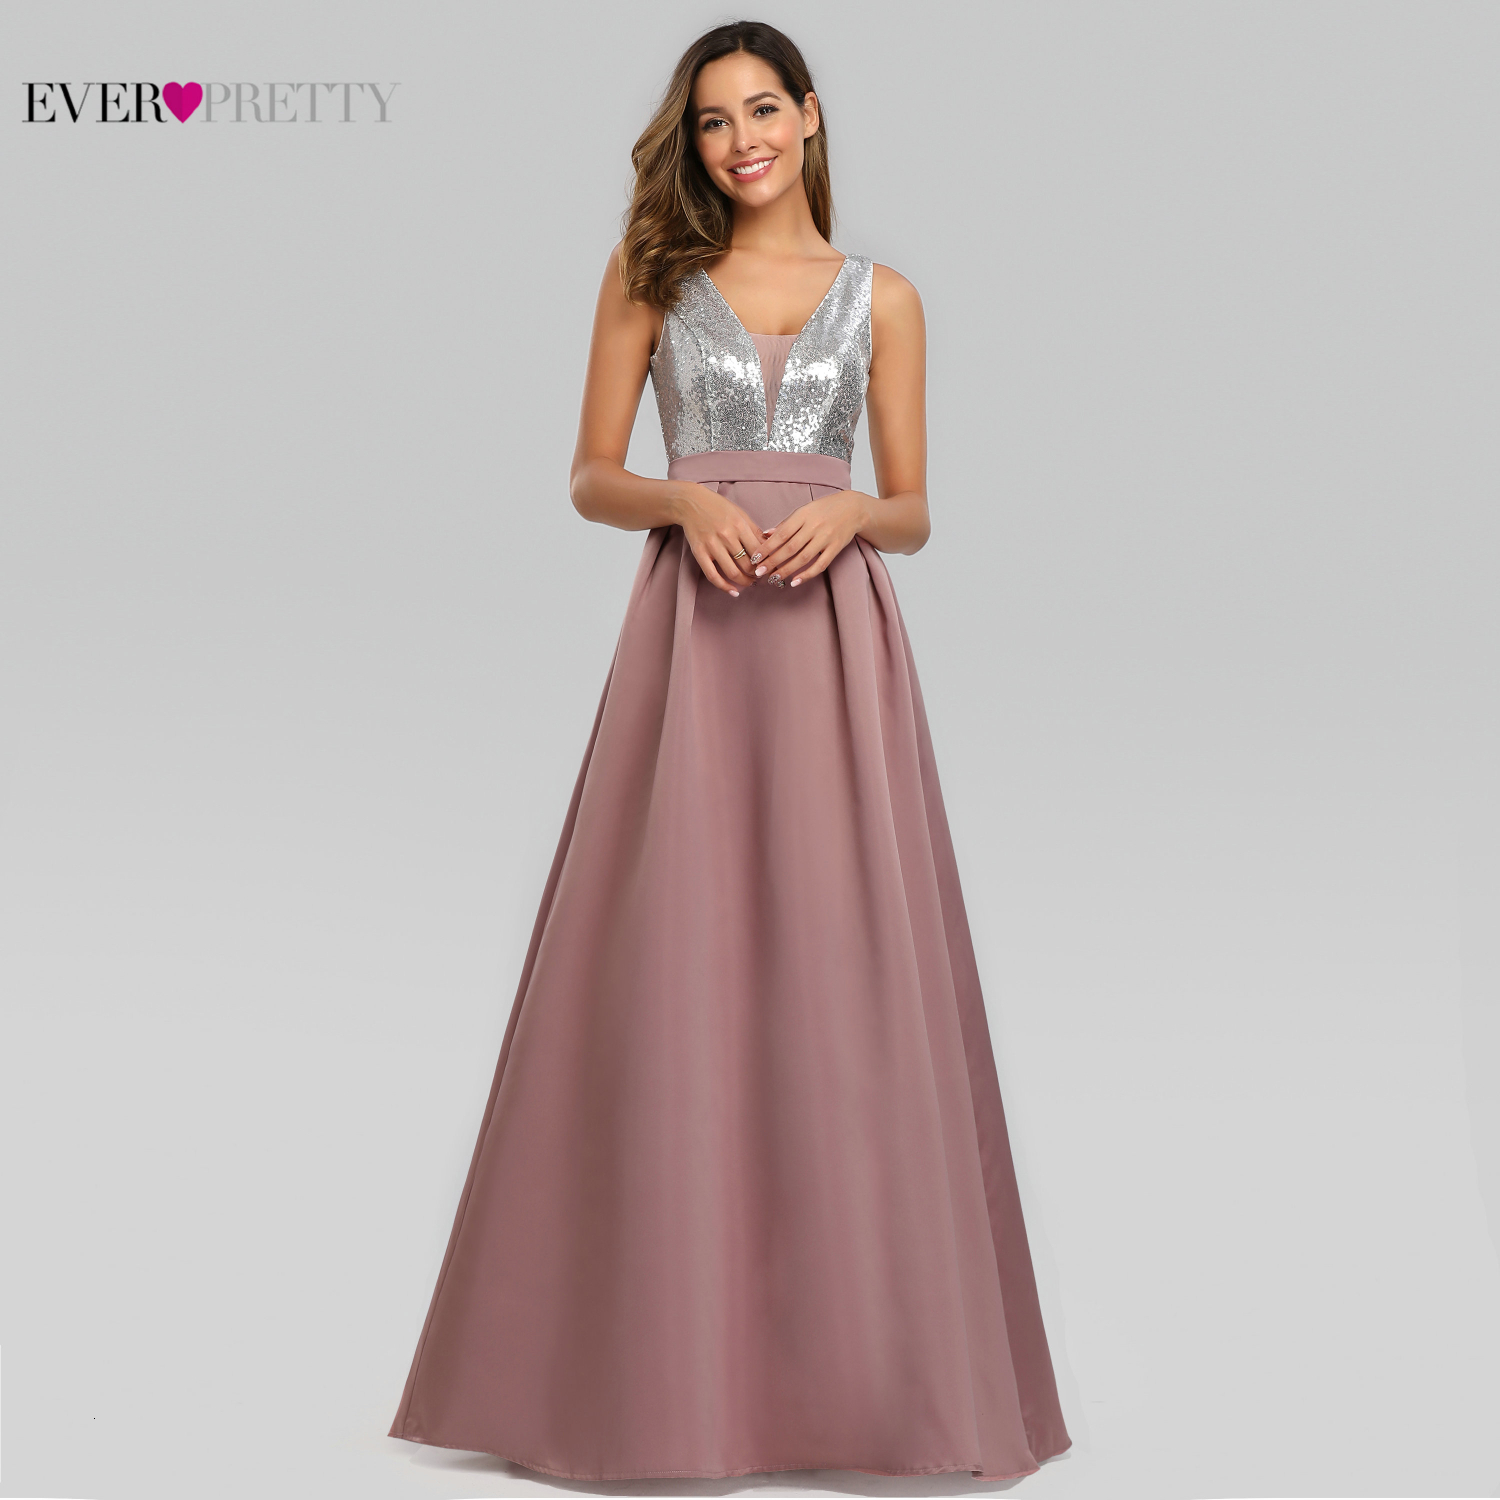 New Elegant A Line V Neck Long Prom Dresses Vestido De Festa Ever Pretty Sexy Backless Sequined Wedding Party Gowns Satin 2020